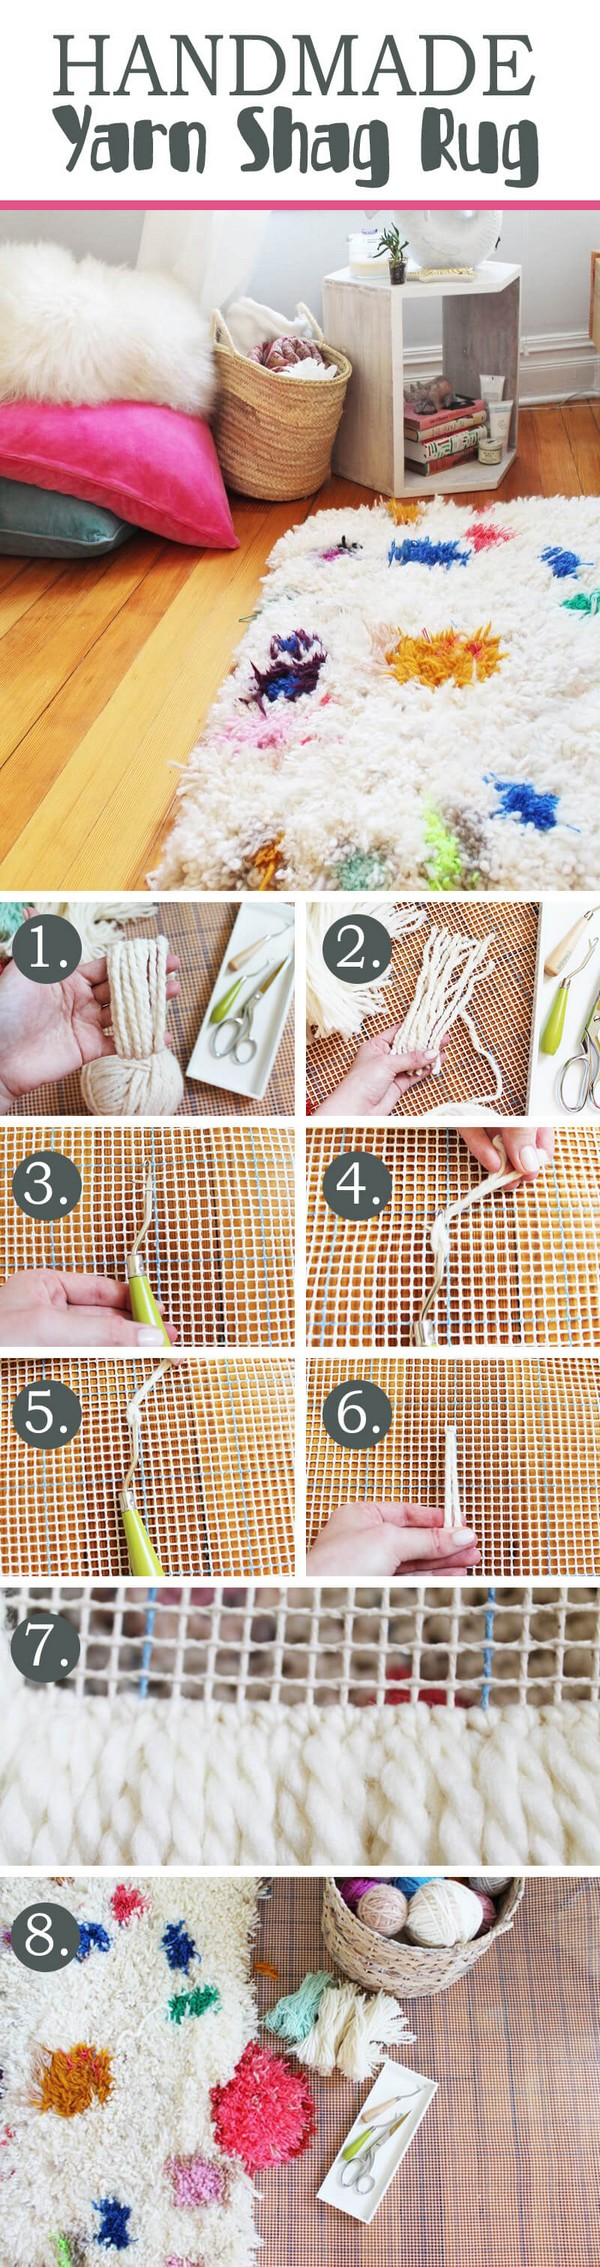 18 Exciting Weekend Diy Home Decor Projects For Making